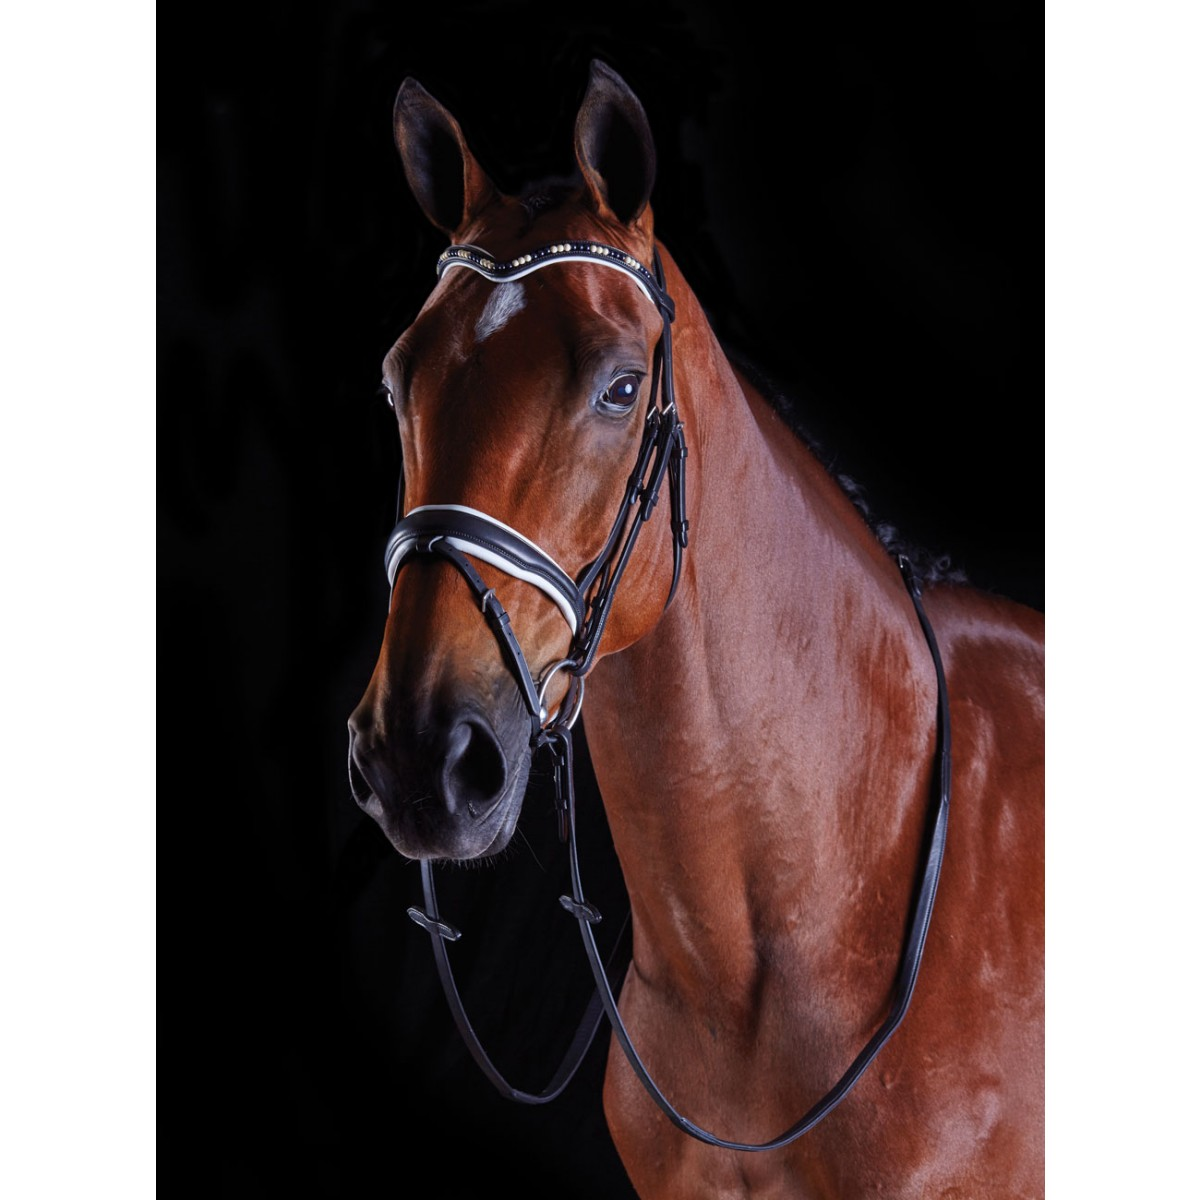 Collegiate Deep V Pearl Flash Bridle